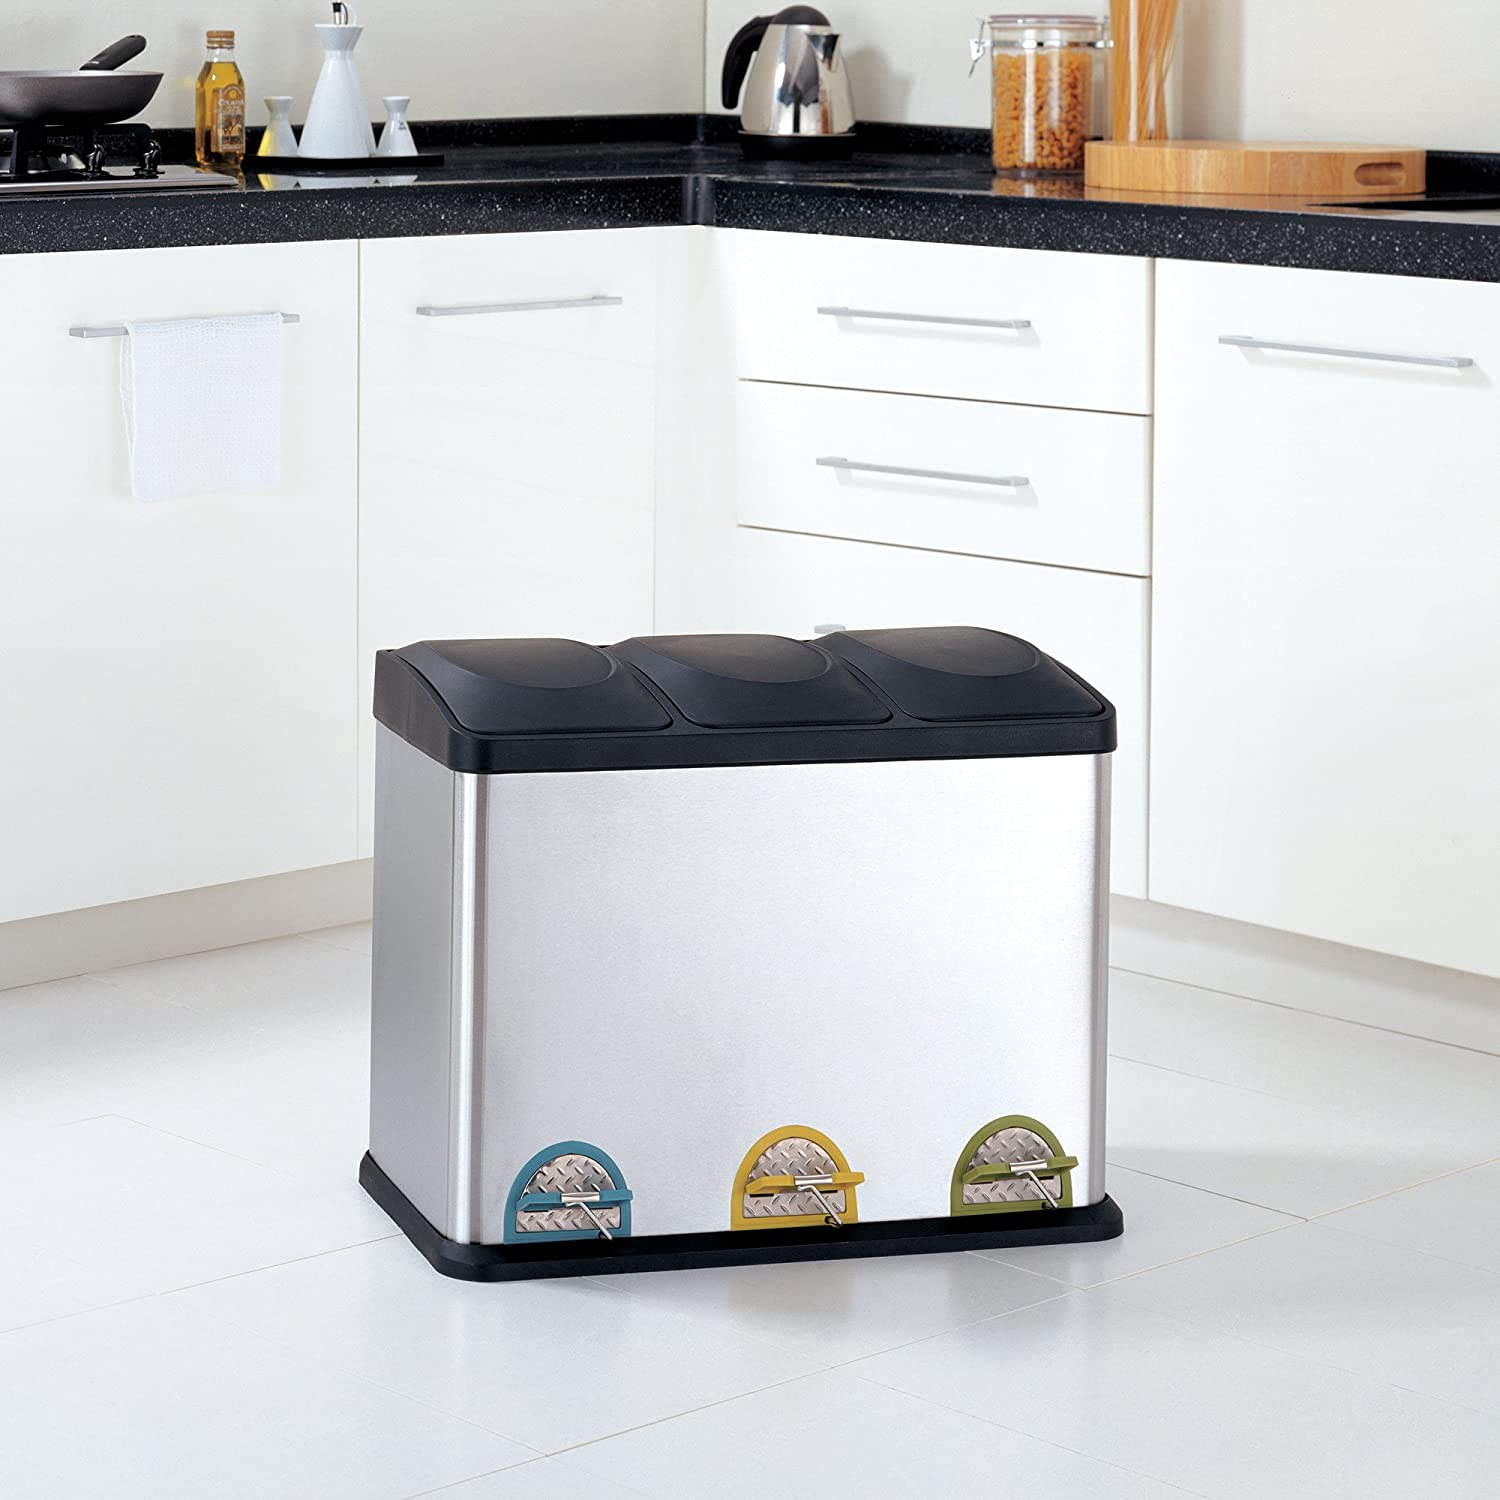 Amazon.com: Organize It All 3 Compartment Step-On 45 Liter Recycling on kitchen wood trash cans, kitchen stainless steel trash cans, kitchen under cabinet trash can, kitchen recycle trash cans,